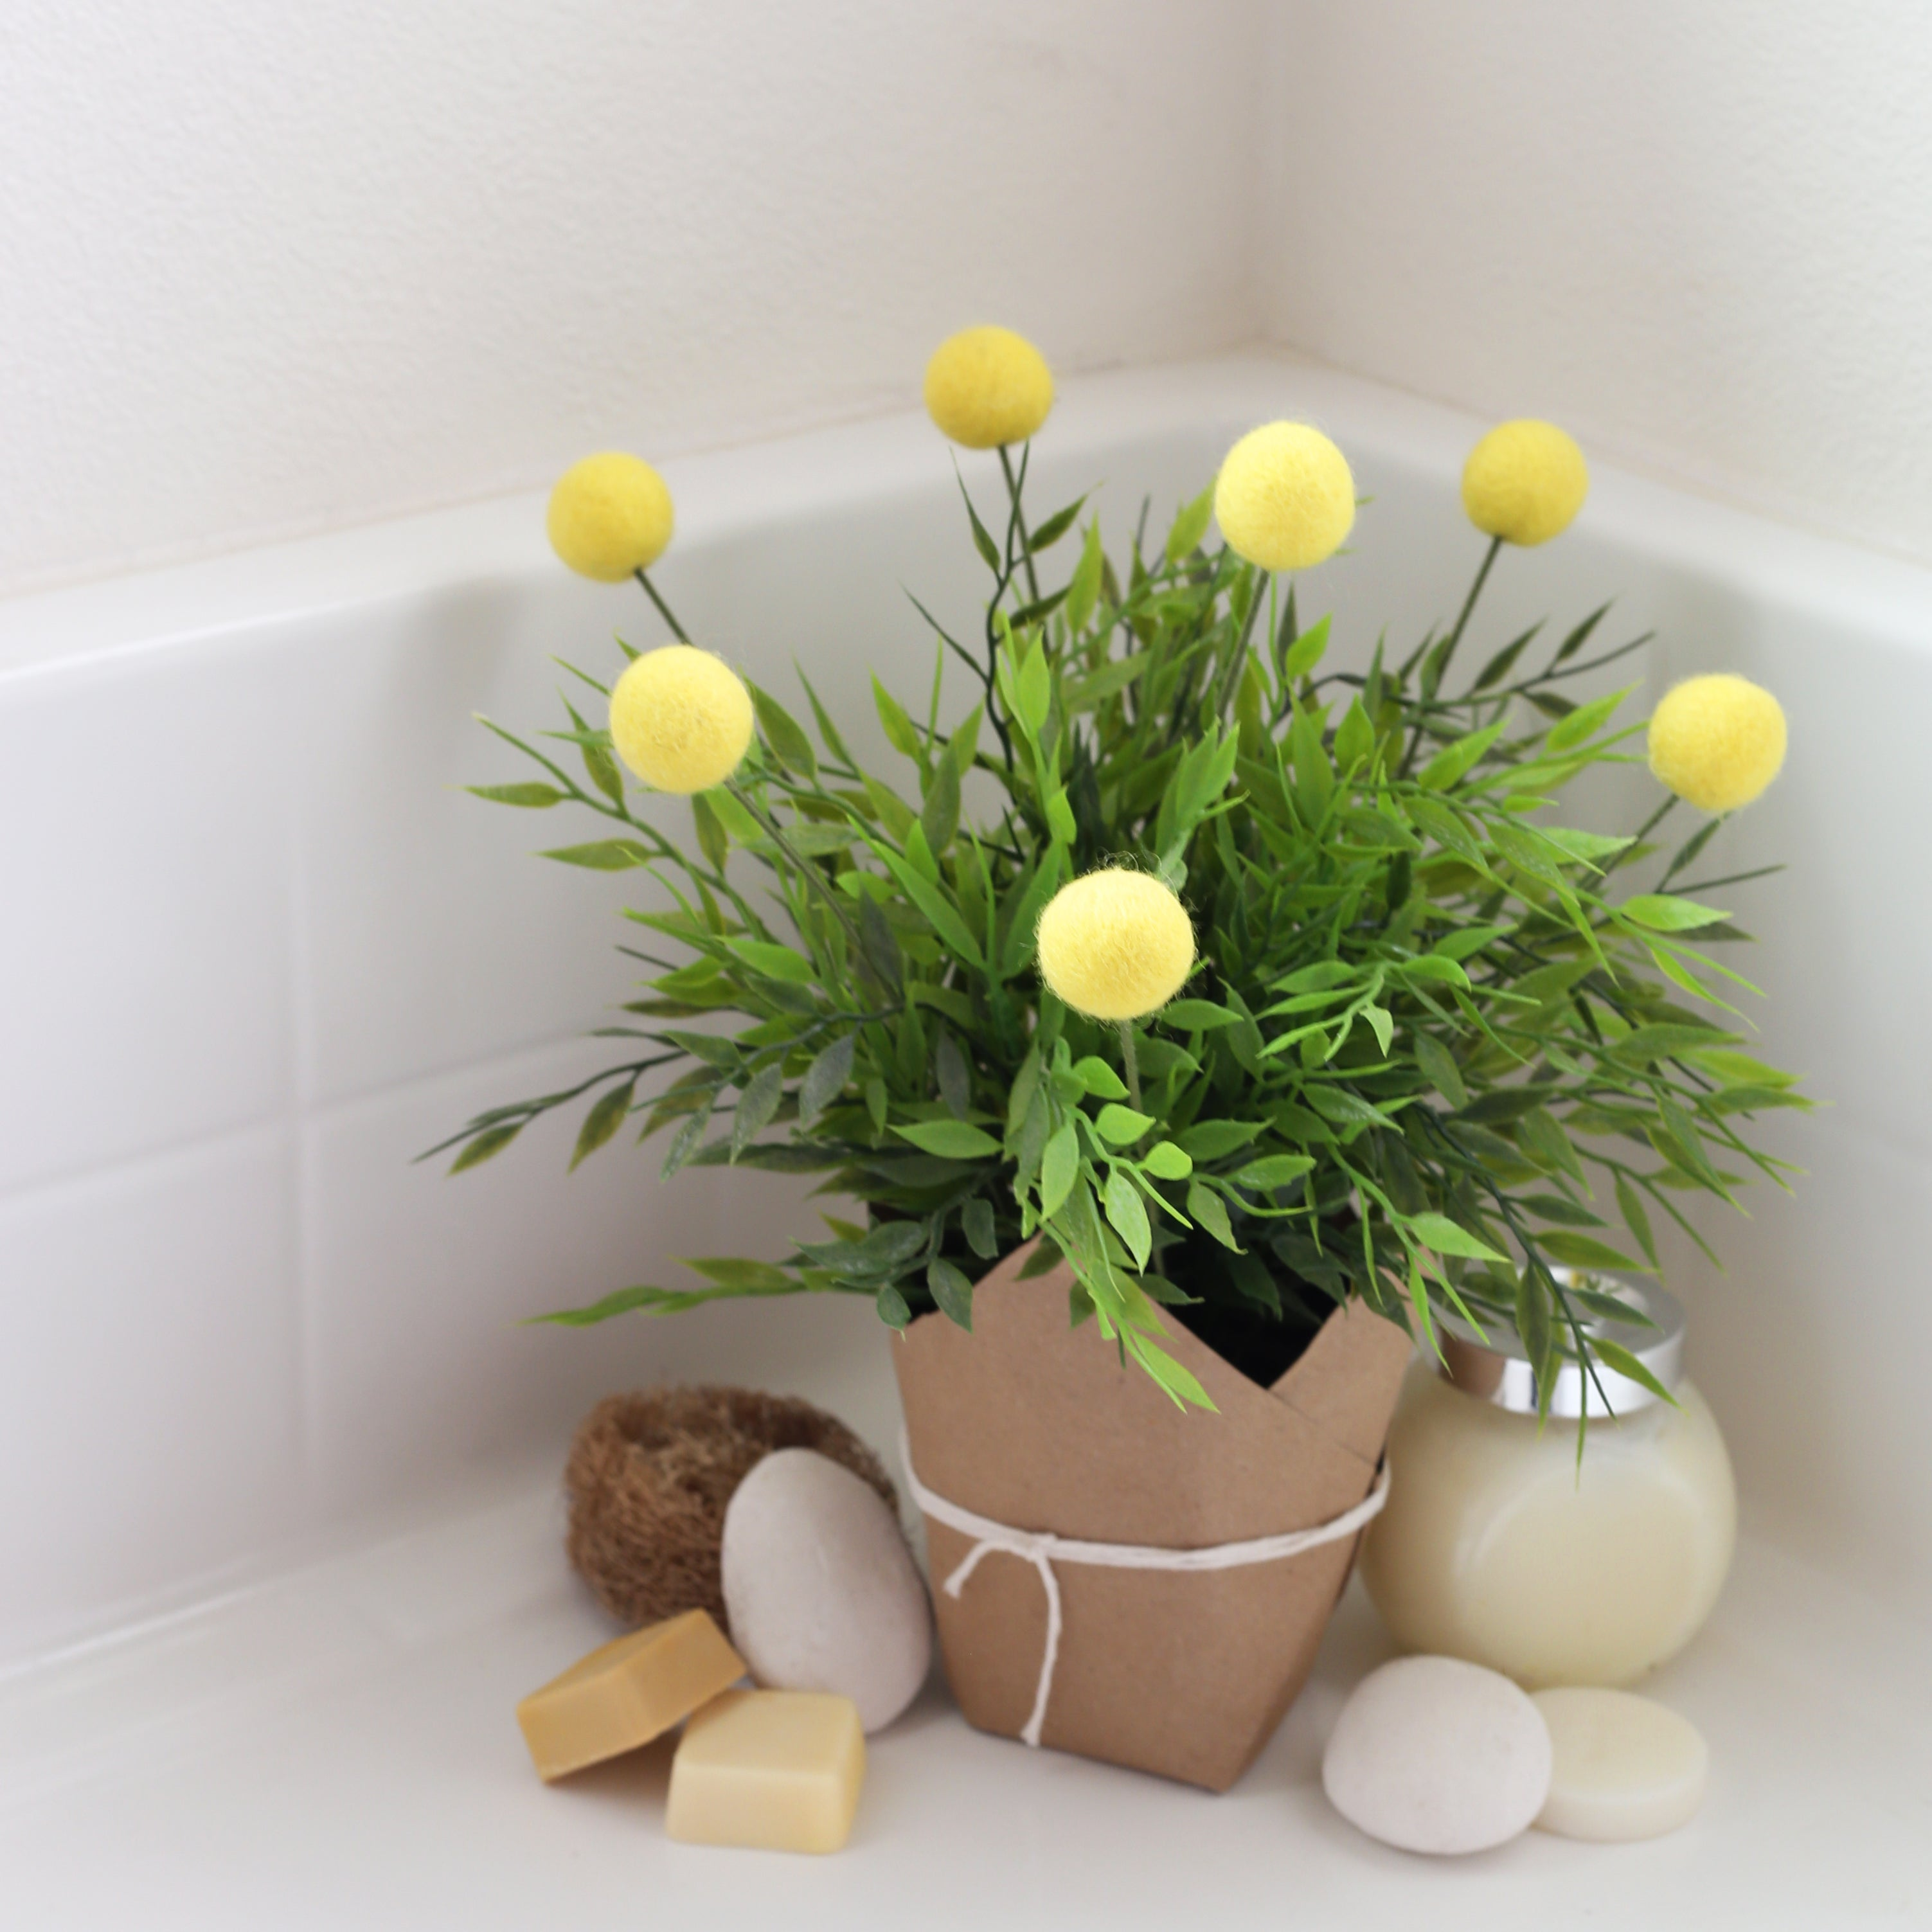 Felt Ball Billy Buttons (Felt Craspedia Flowers)